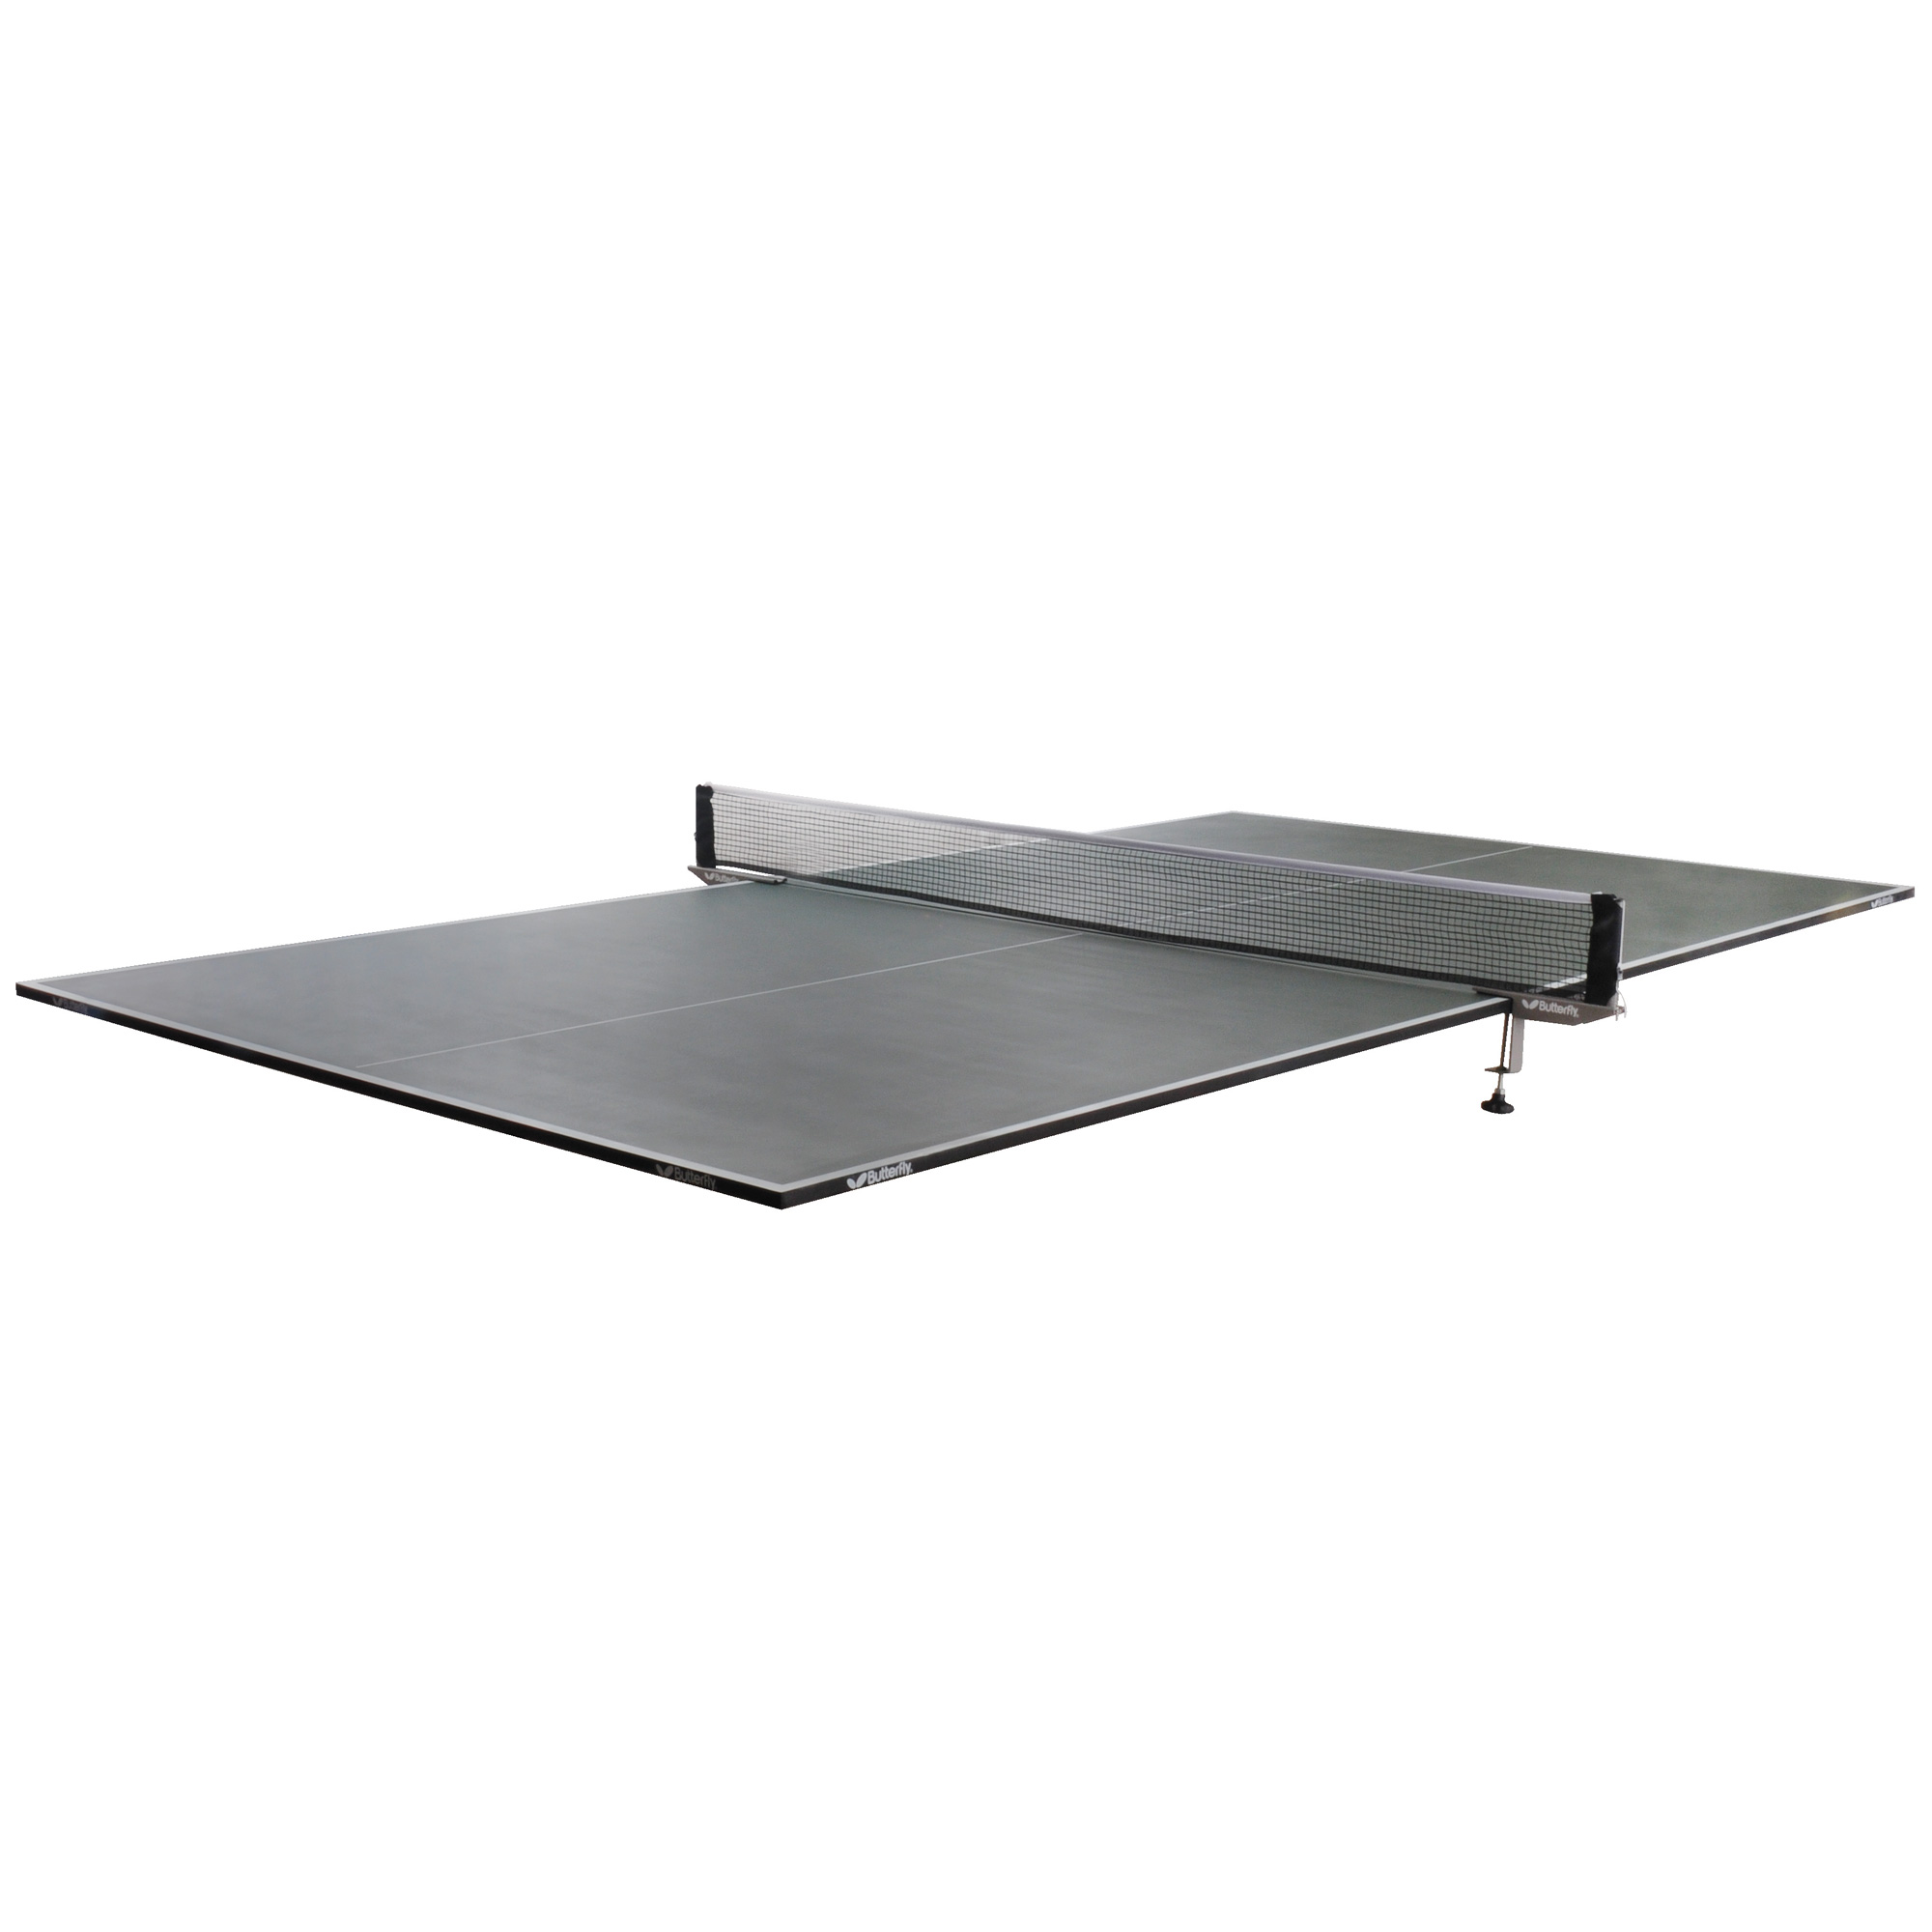 Butterfly full size green table top table tennis table - Full size table tennis table dimensions ...